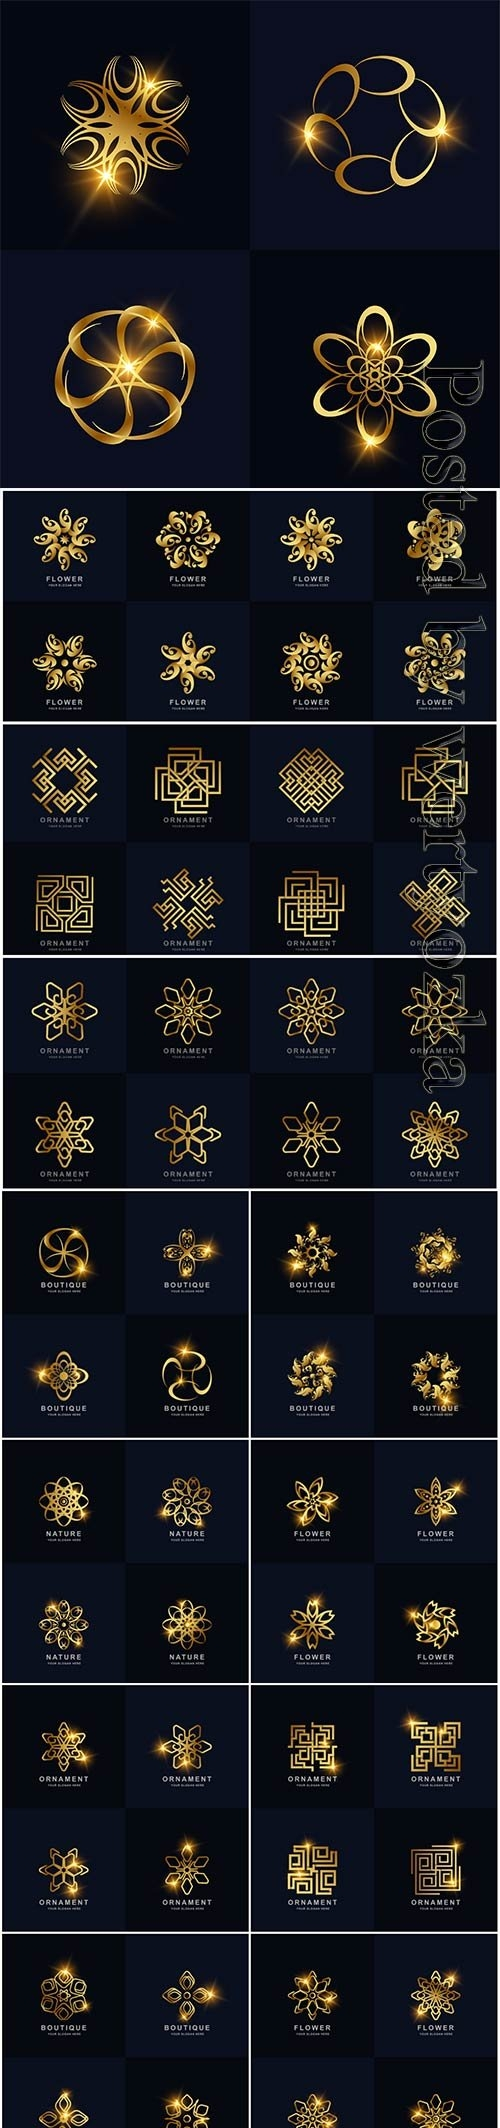 Abstract golden flower ornament logo set collection